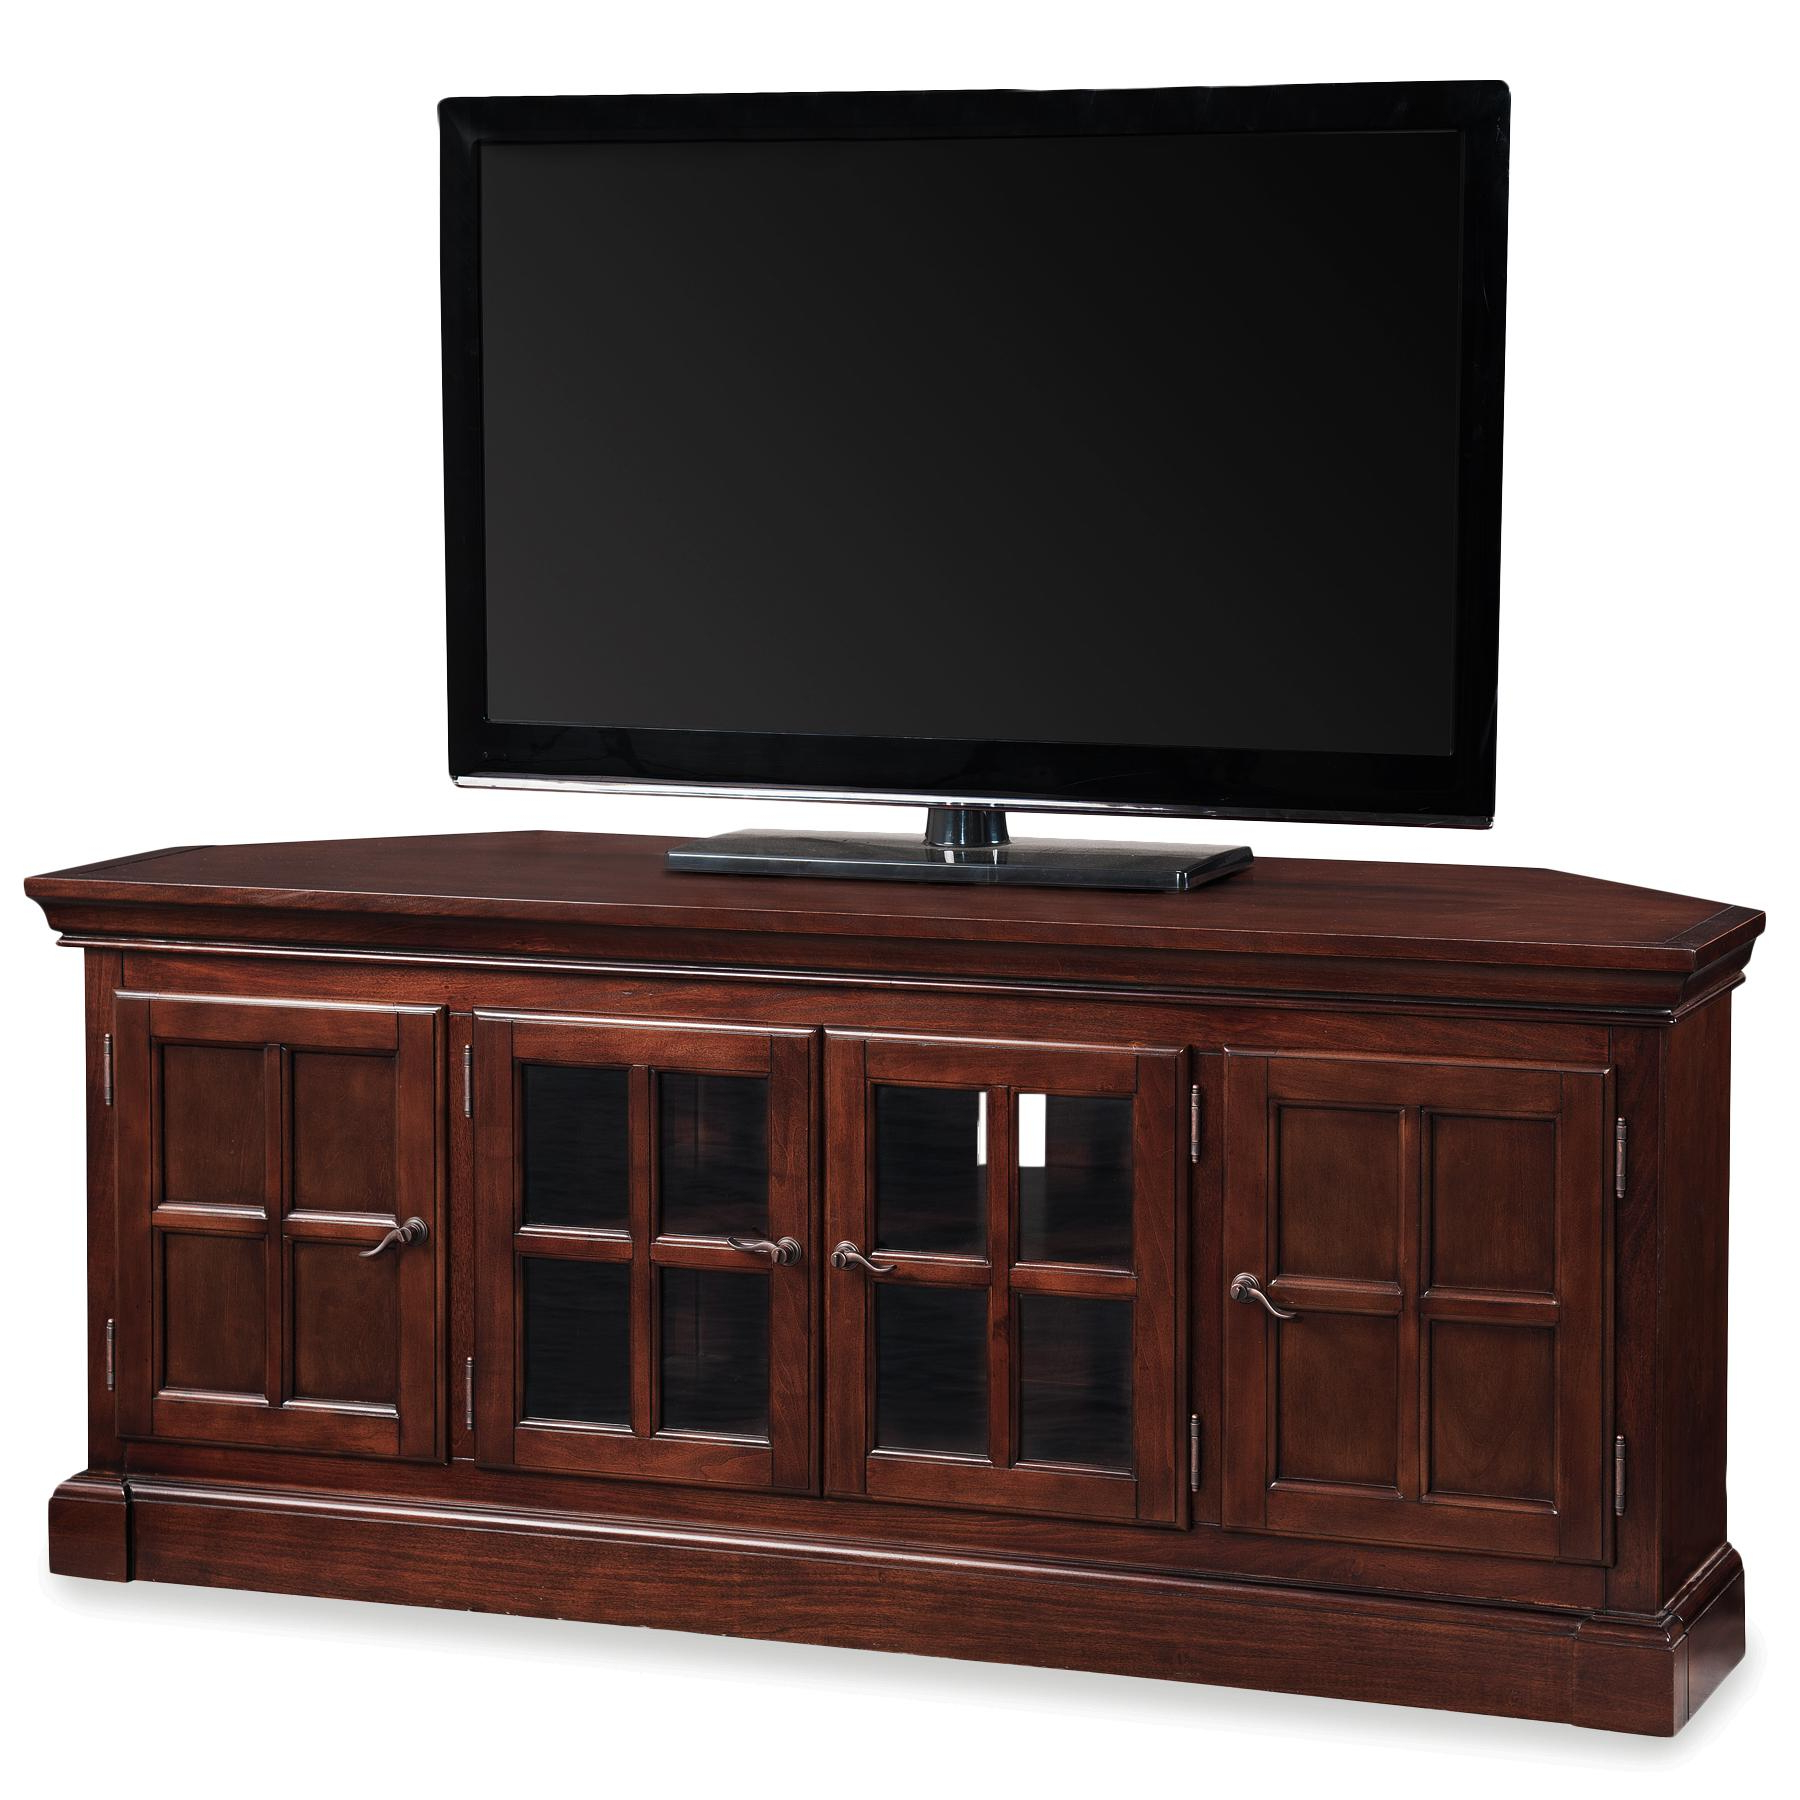 "2017 Amazon: Leick 81586 Bella Maison 56"" Corner Tv Stand With Lever With Tv Stands For Corner (Gallery 8 of 20)"